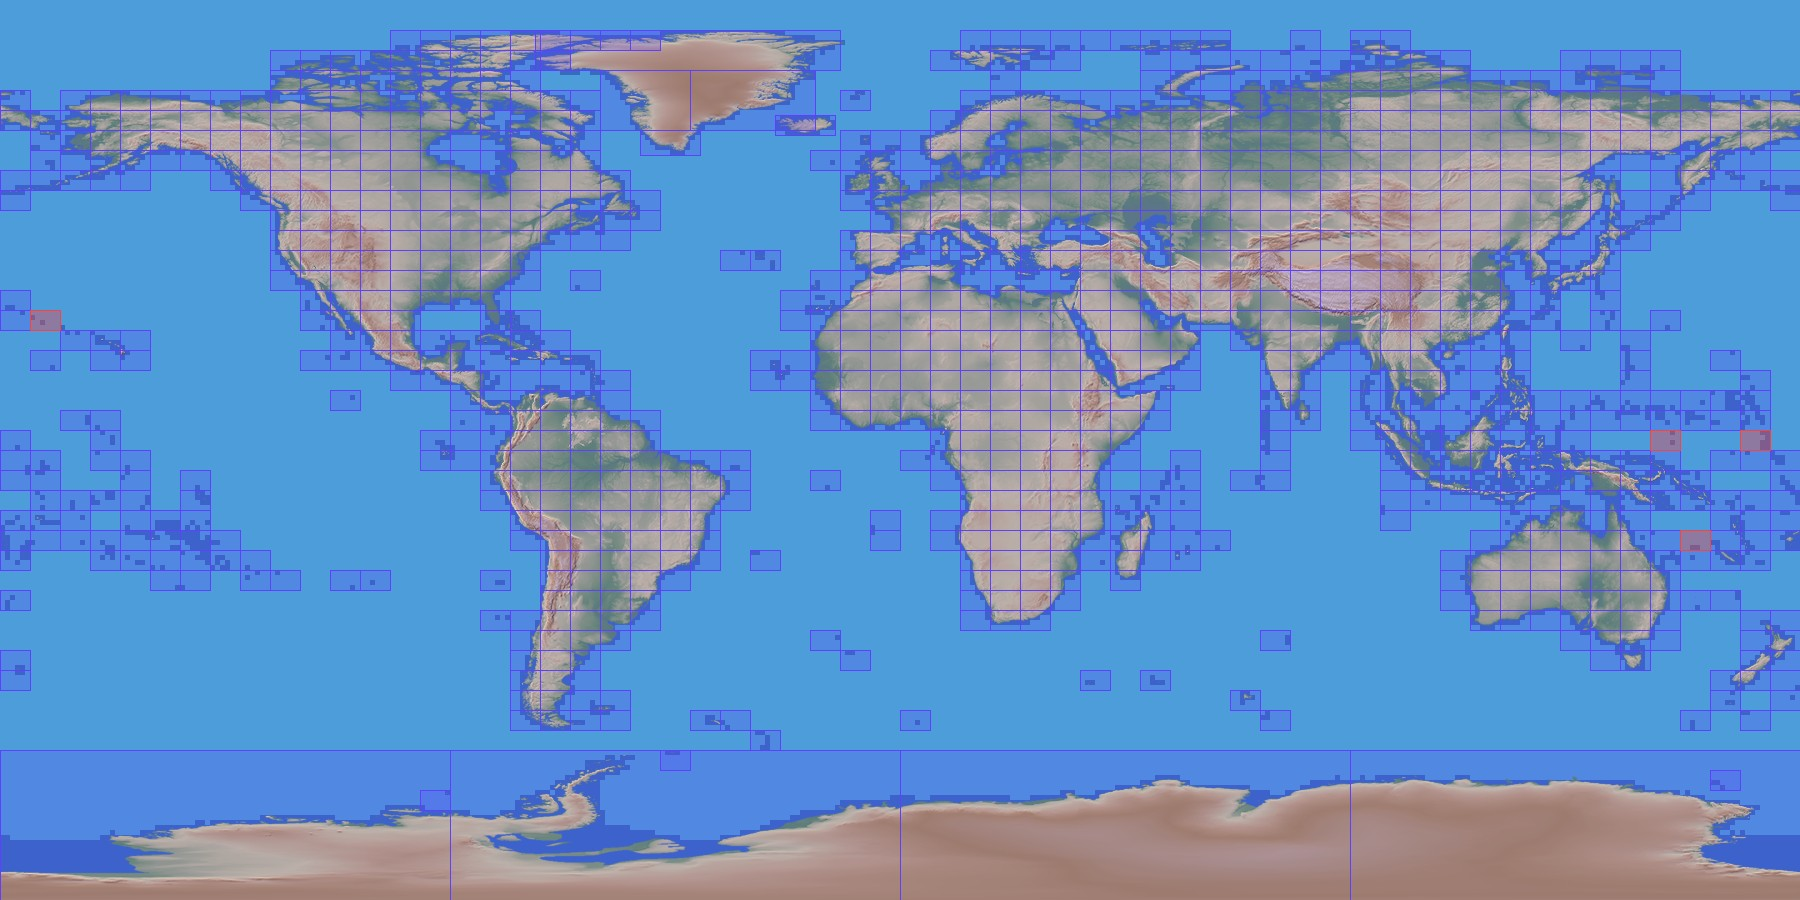 World Elevation Map Dem World Elevation Map Dem Vu Geoplaza